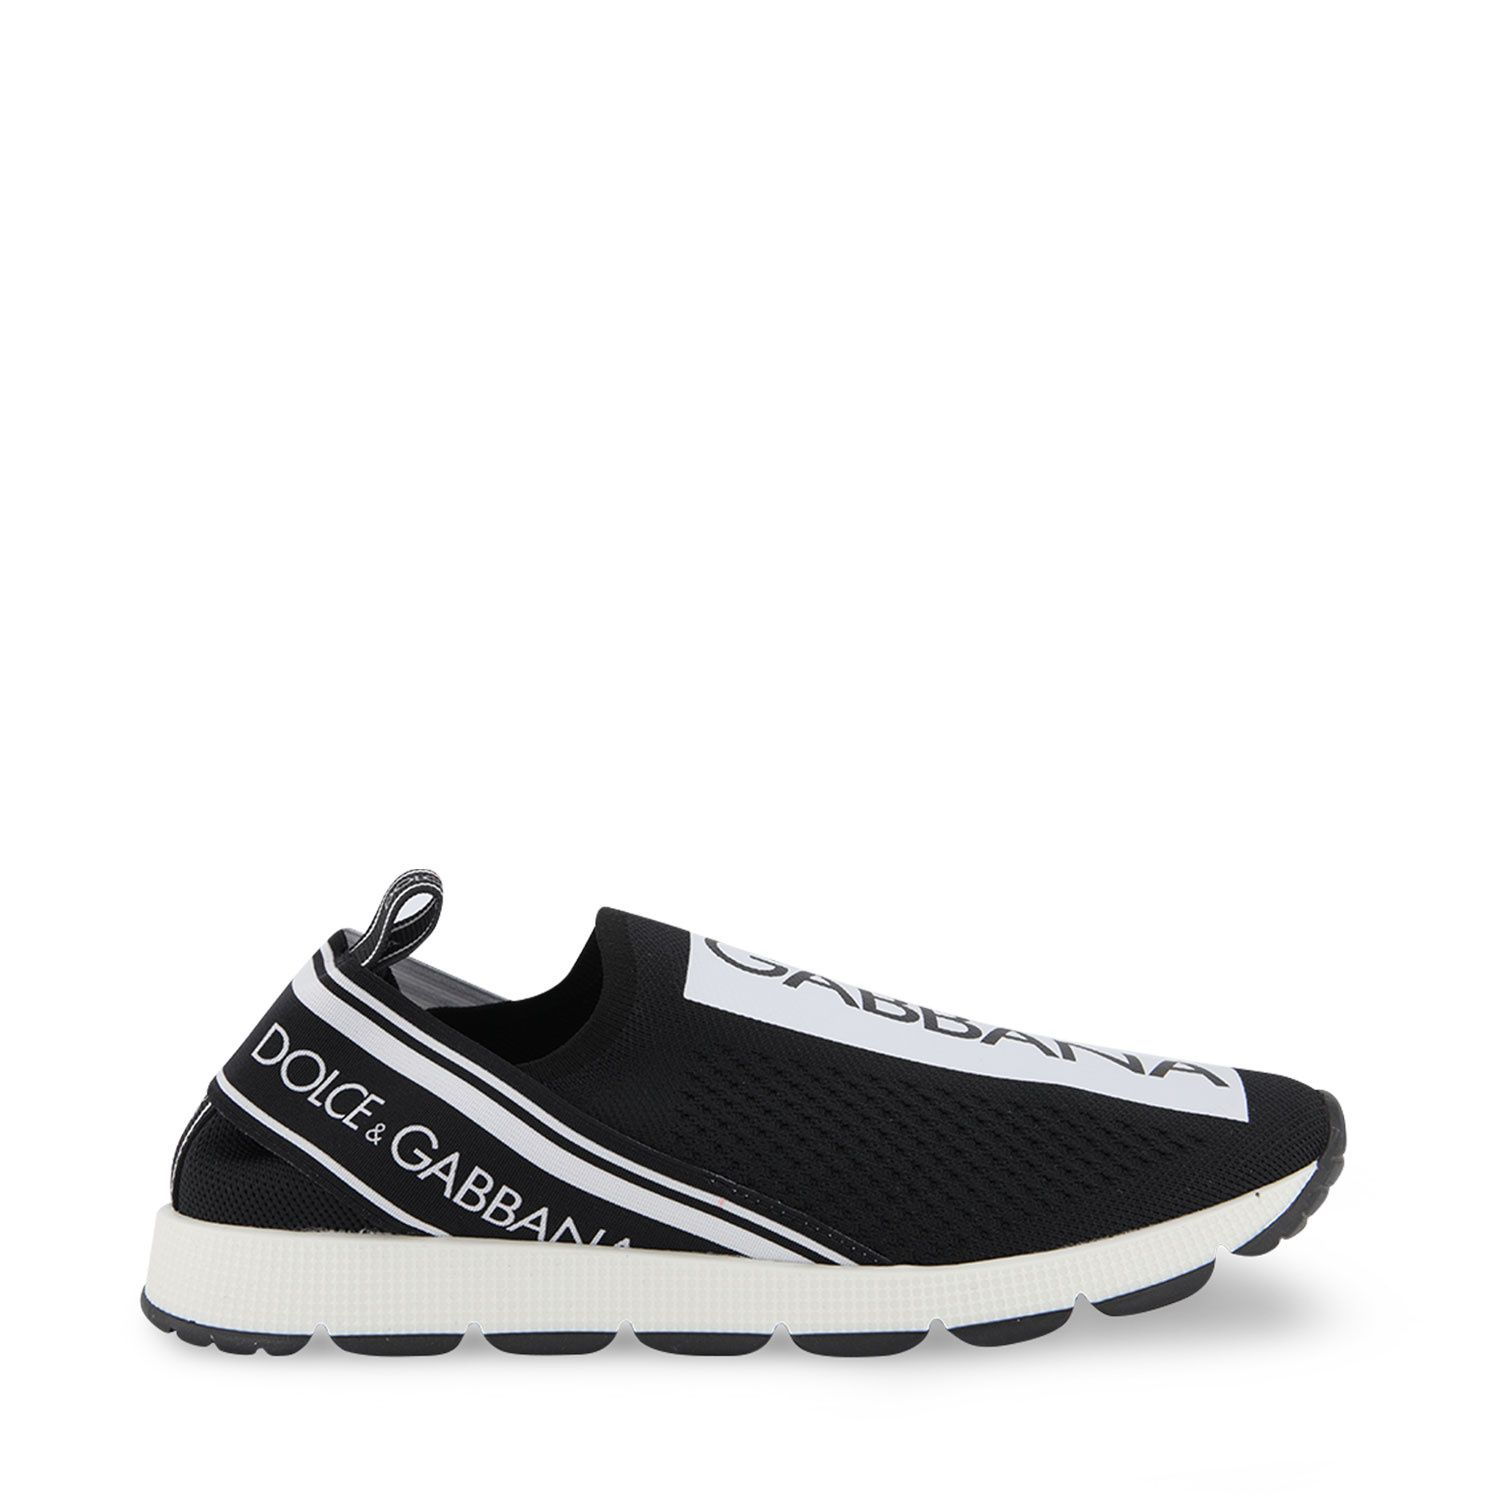 Picture of Dolce & Gabbana DN0105 AH677 kids sneakers black